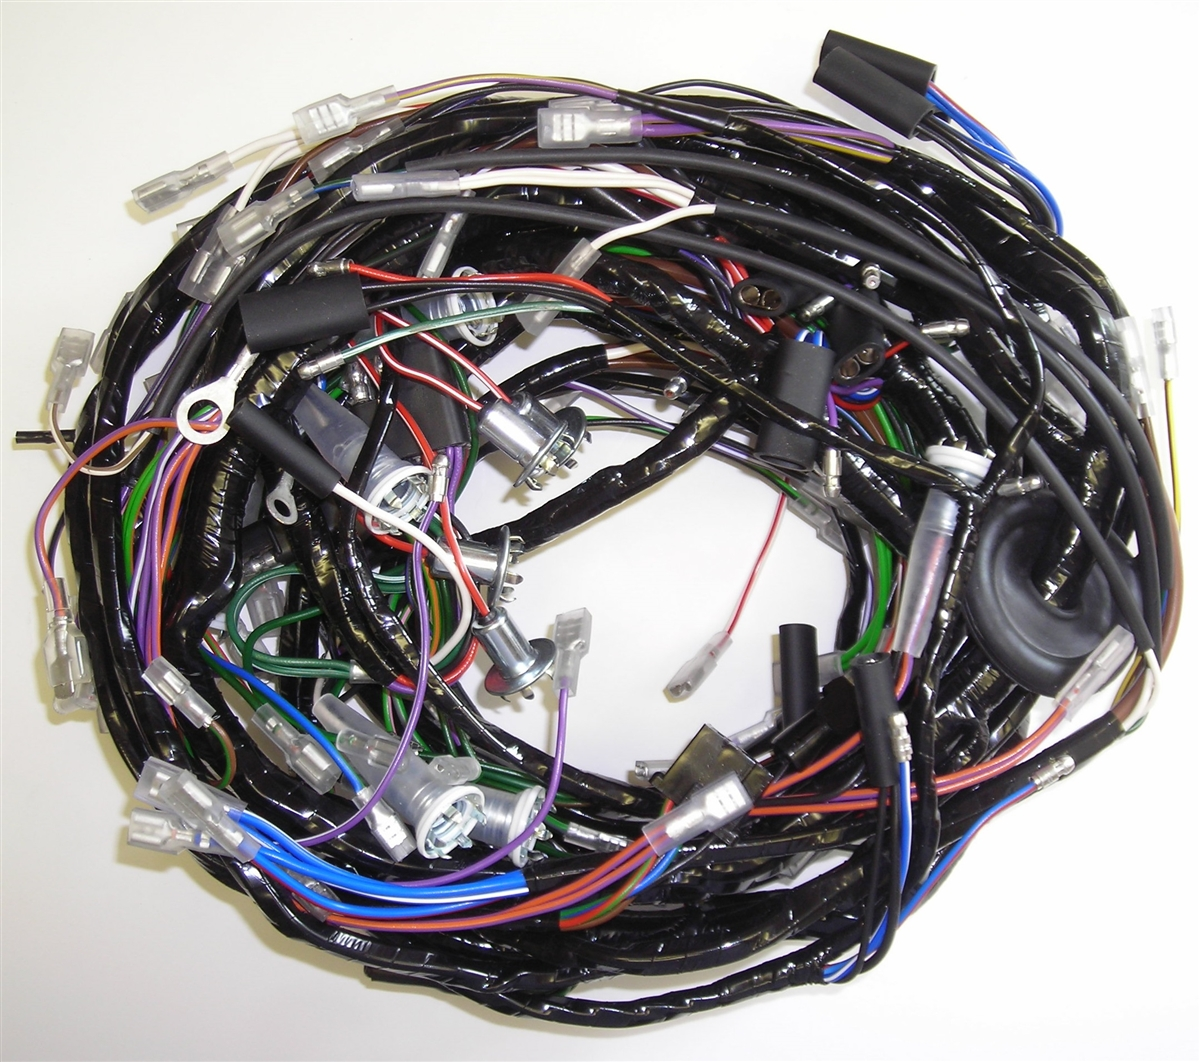 892 2?1337598720 wiring harness triumph tr6 triumph tr6 wiring harness at aneh.co